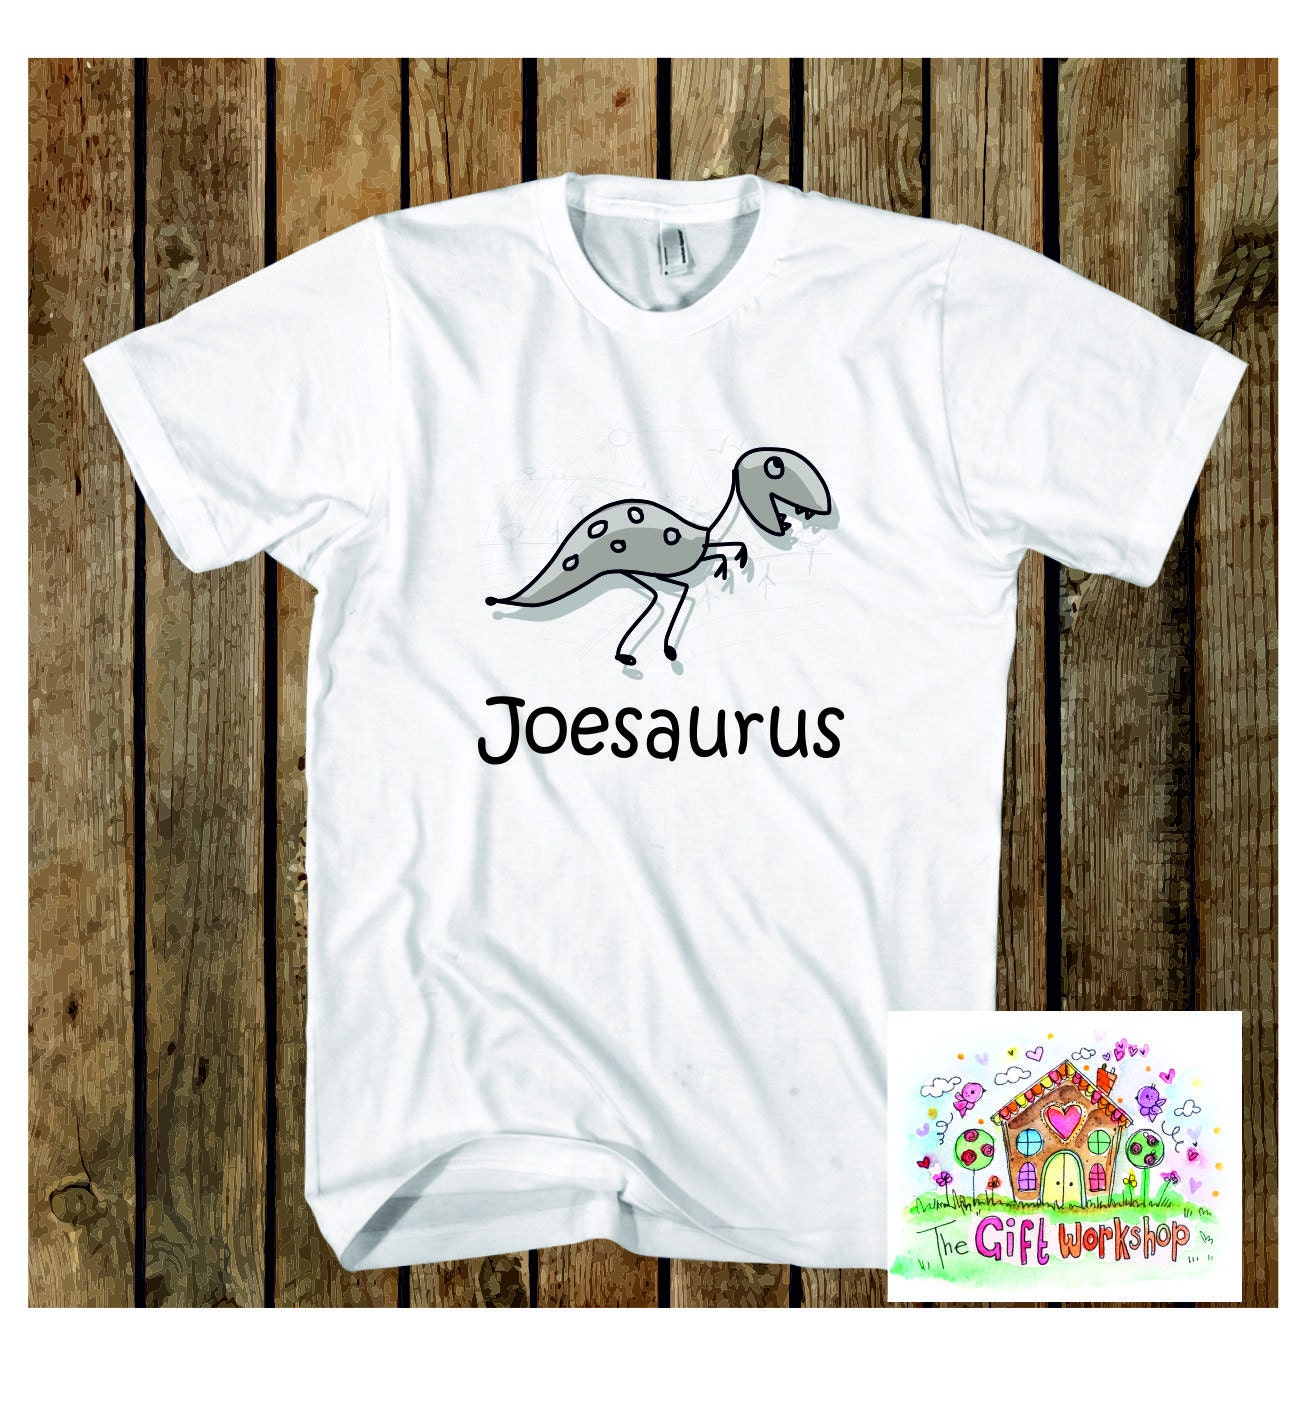 Personalised childrens Dinosaur T shirt T Rex  Personalized Childrens Dinosaur T Shirt Birthday  Christmas  Childrens Party